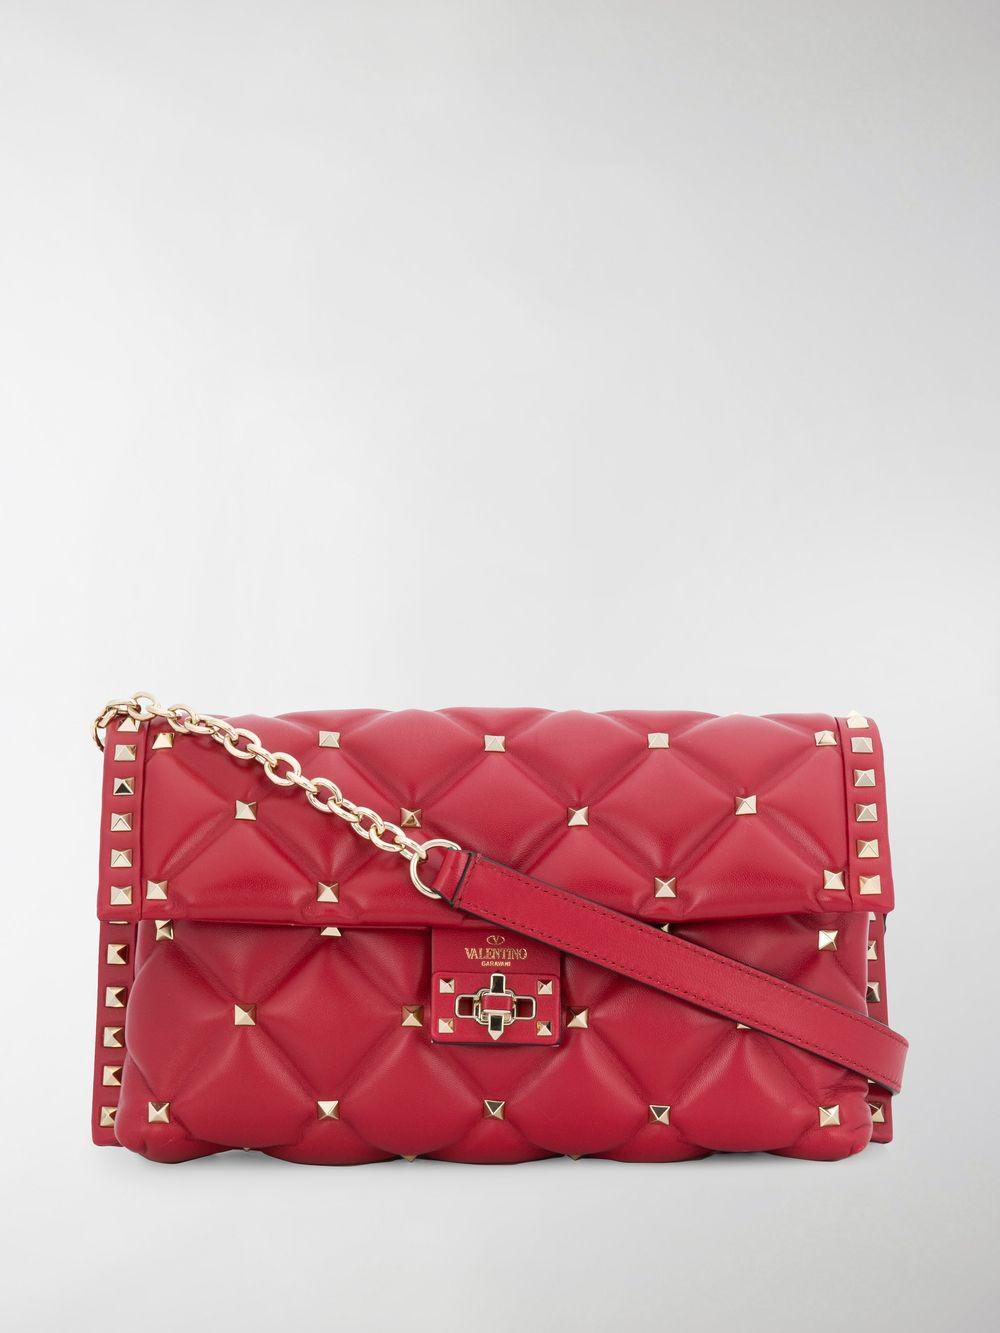 Valentino Garavani Candystud Shoulder Bag in Red - Lyst 2d0d929a11